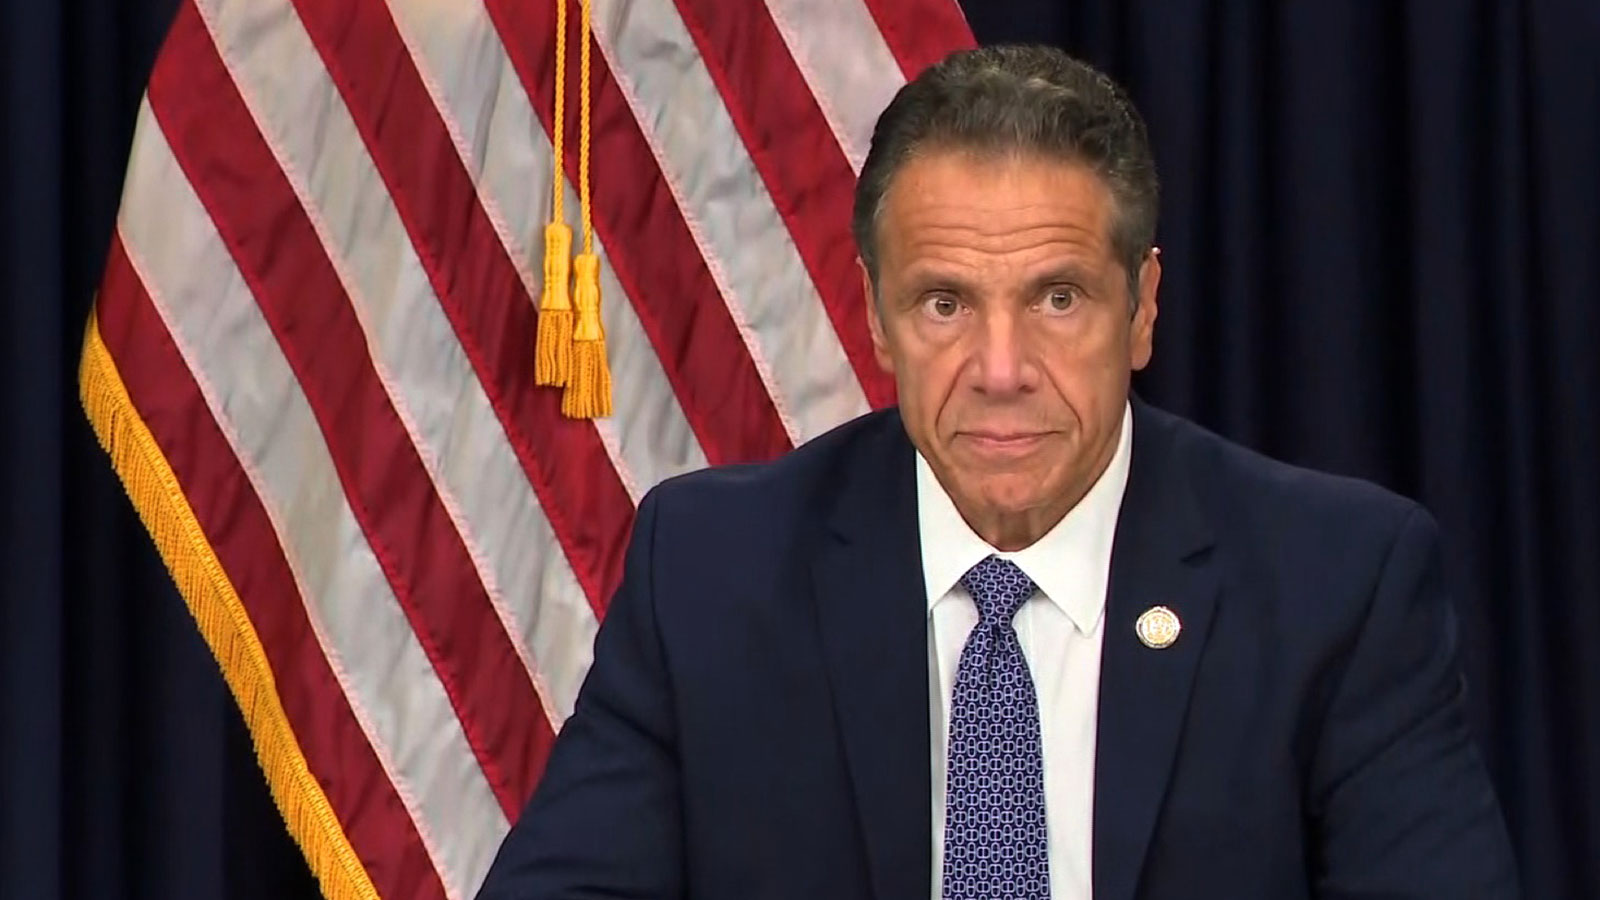 Gov. Andrew Cuomo speaks during a press conference on July 1 in New York.